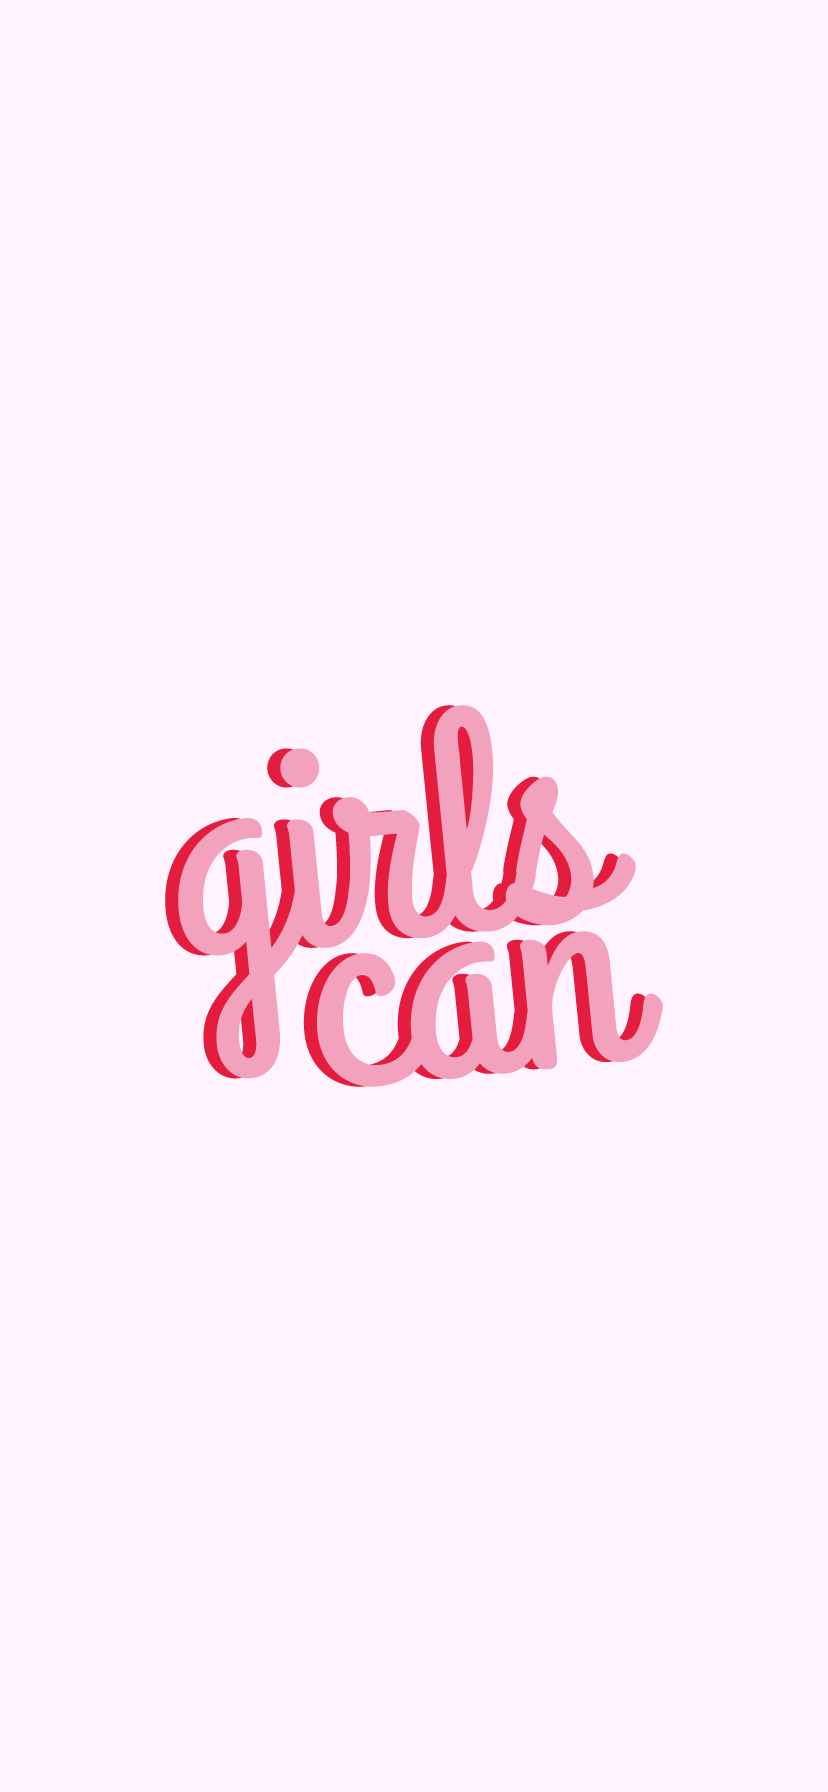 Girls Can Women Courage Quote White Version Sticker By Isabelle